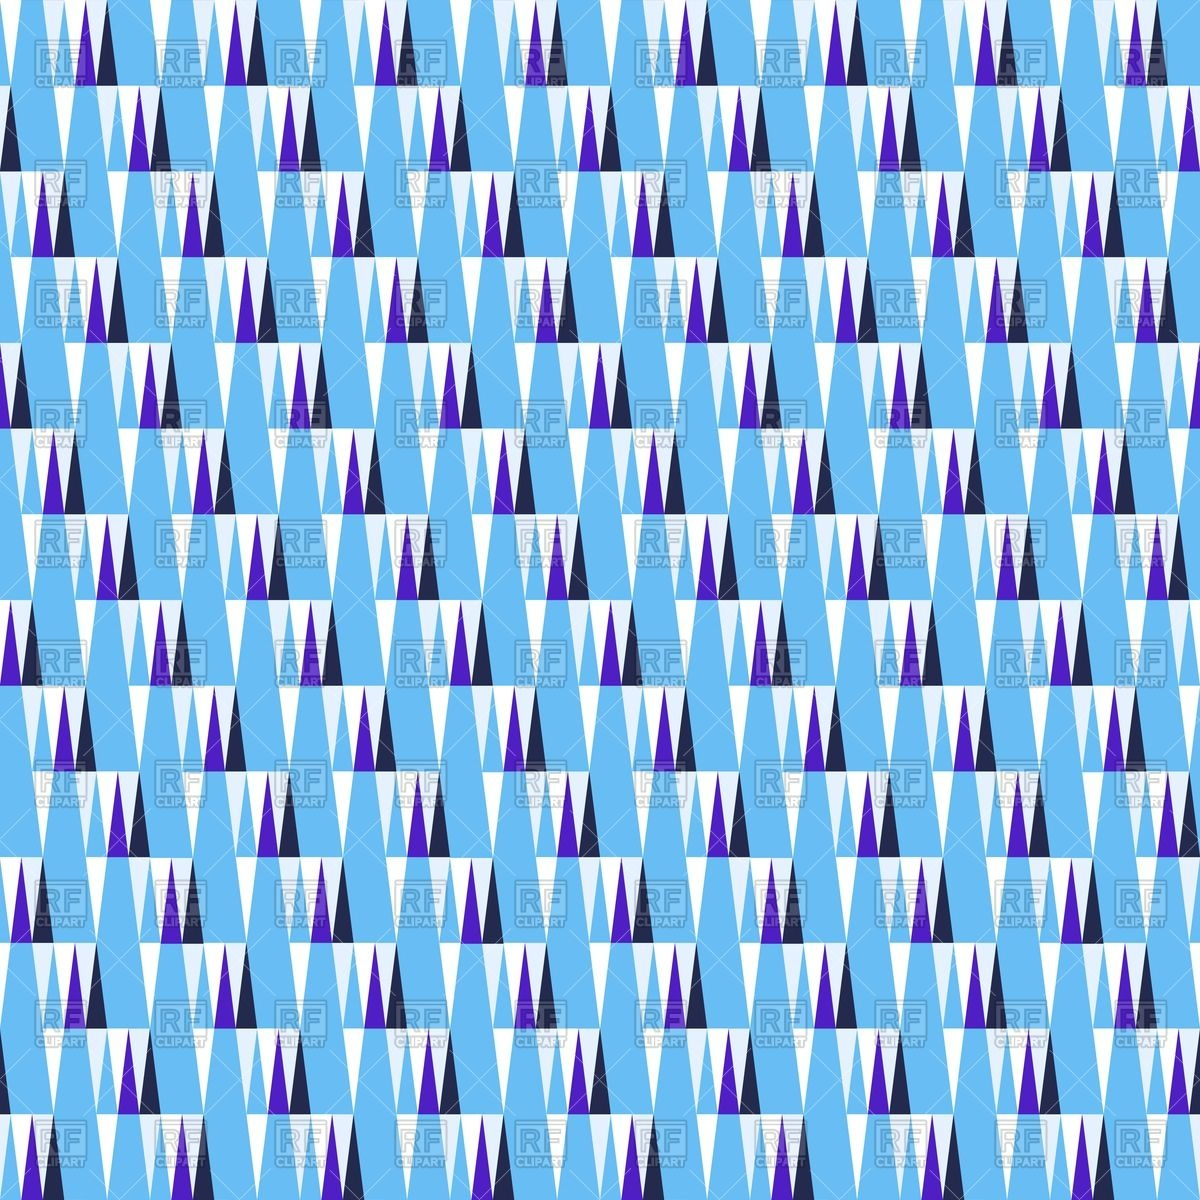 Seamless pattern with ice icicles Vector Image #61088.